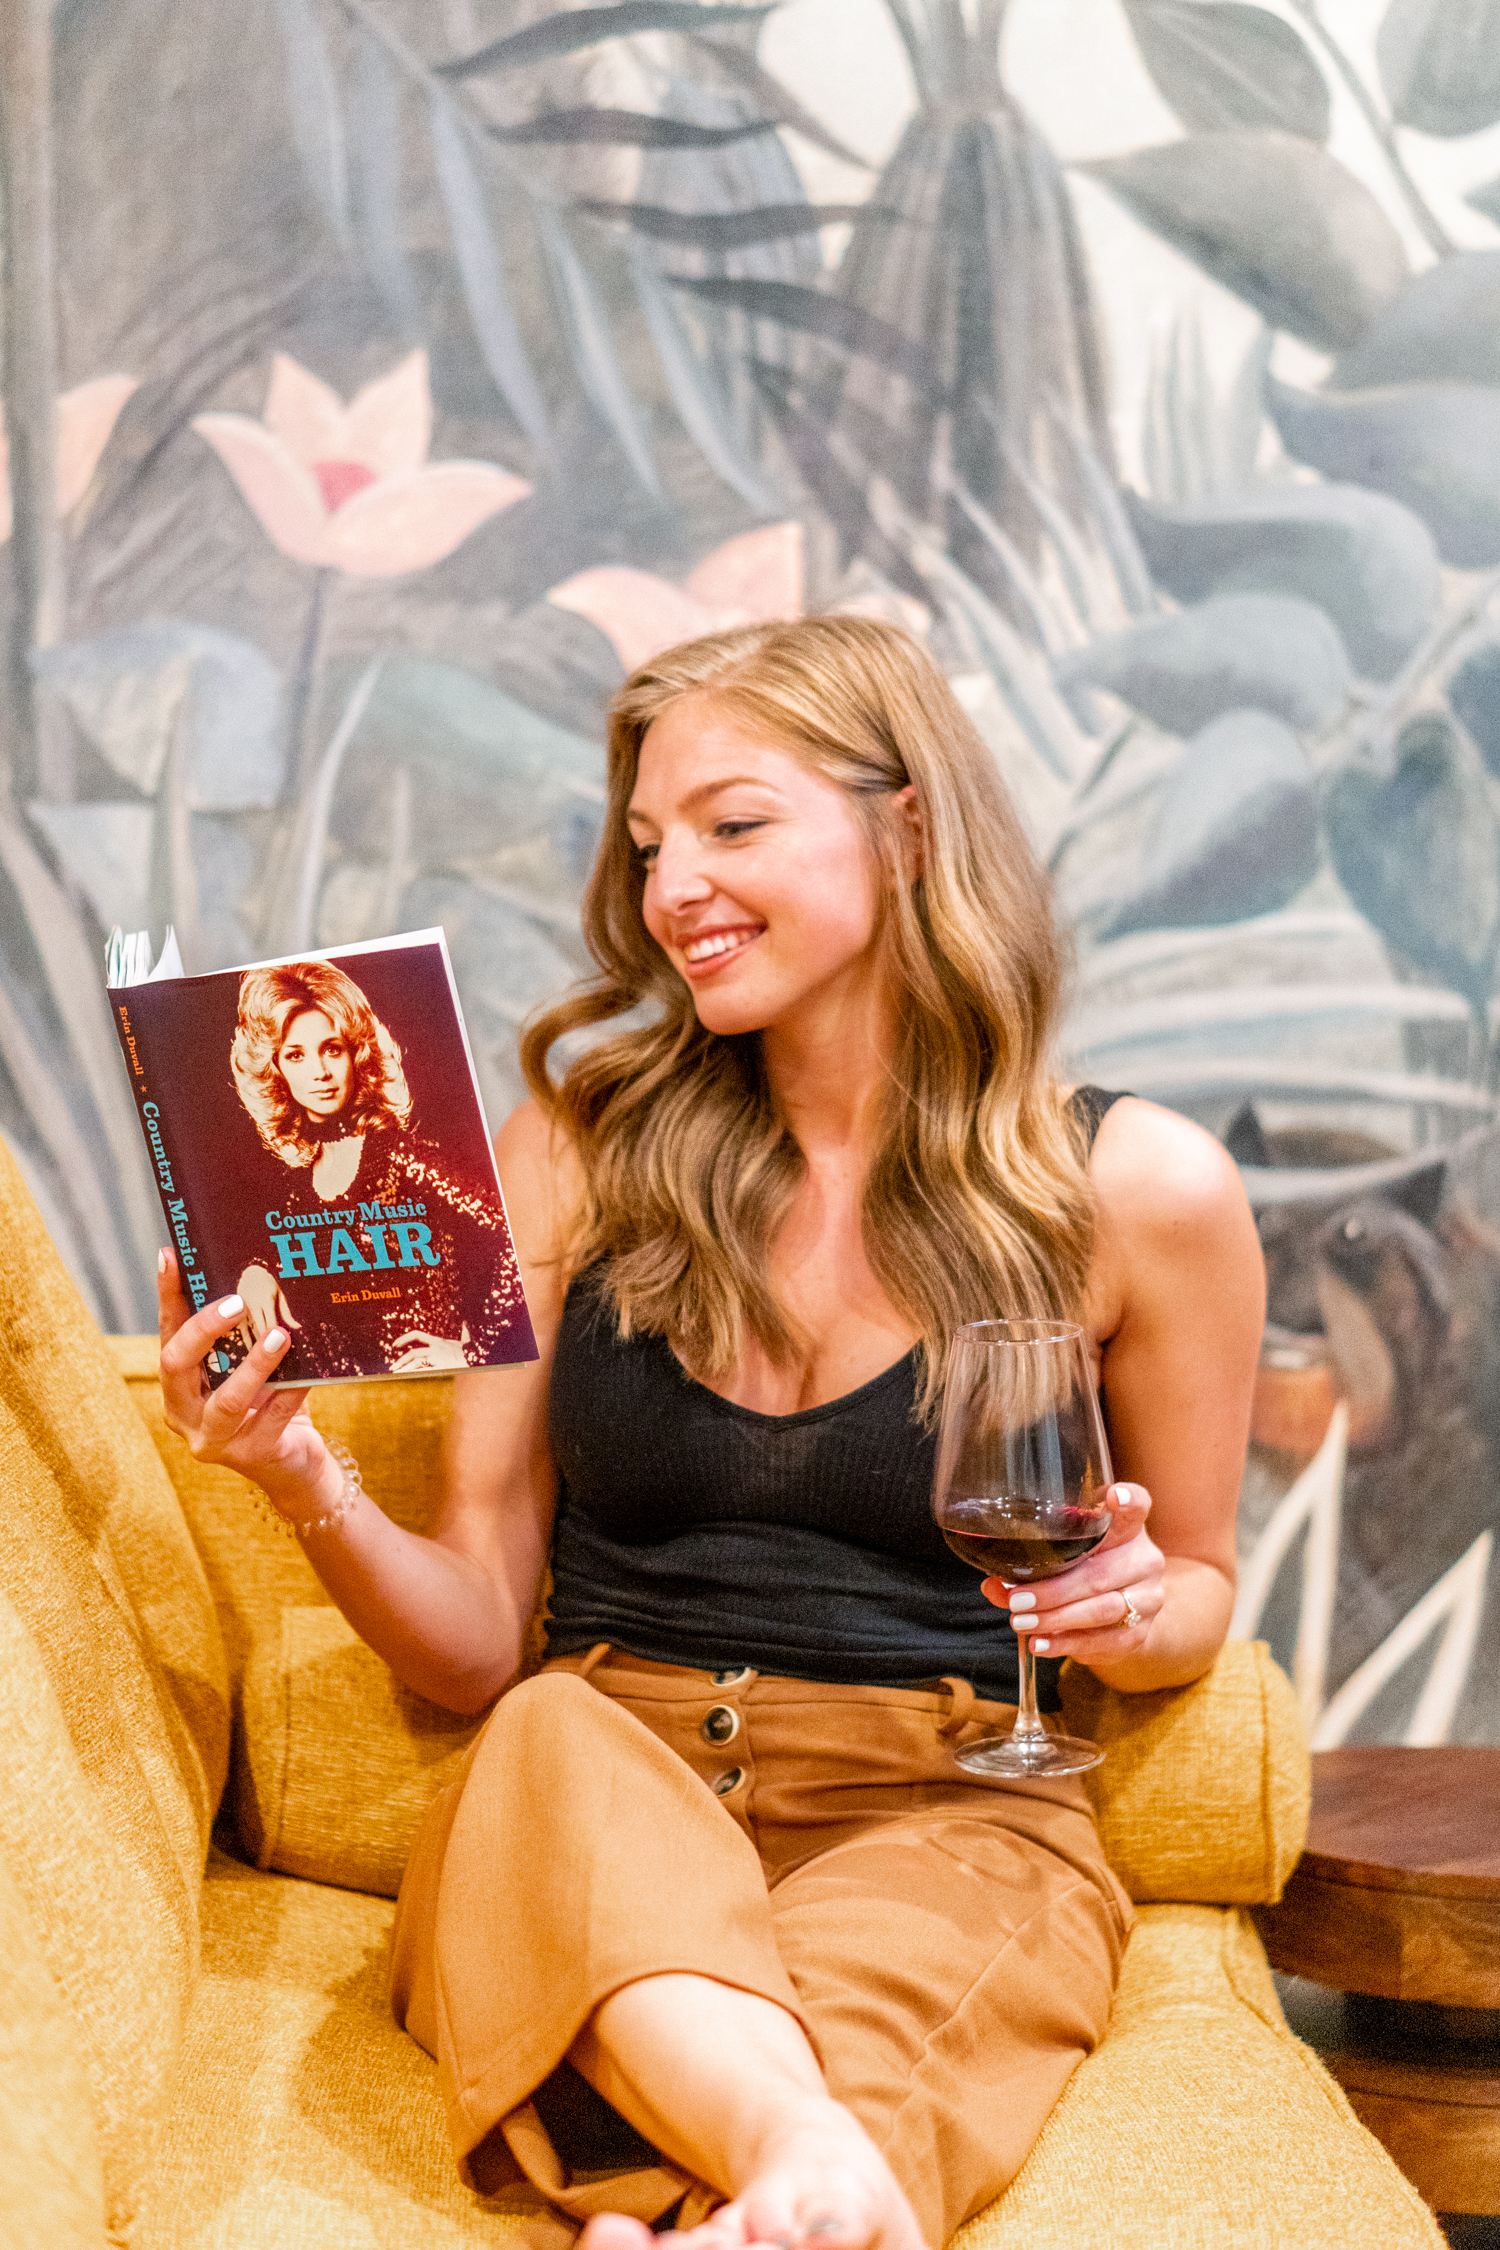 Girl sitting on yellow couch reading book and drinking wine